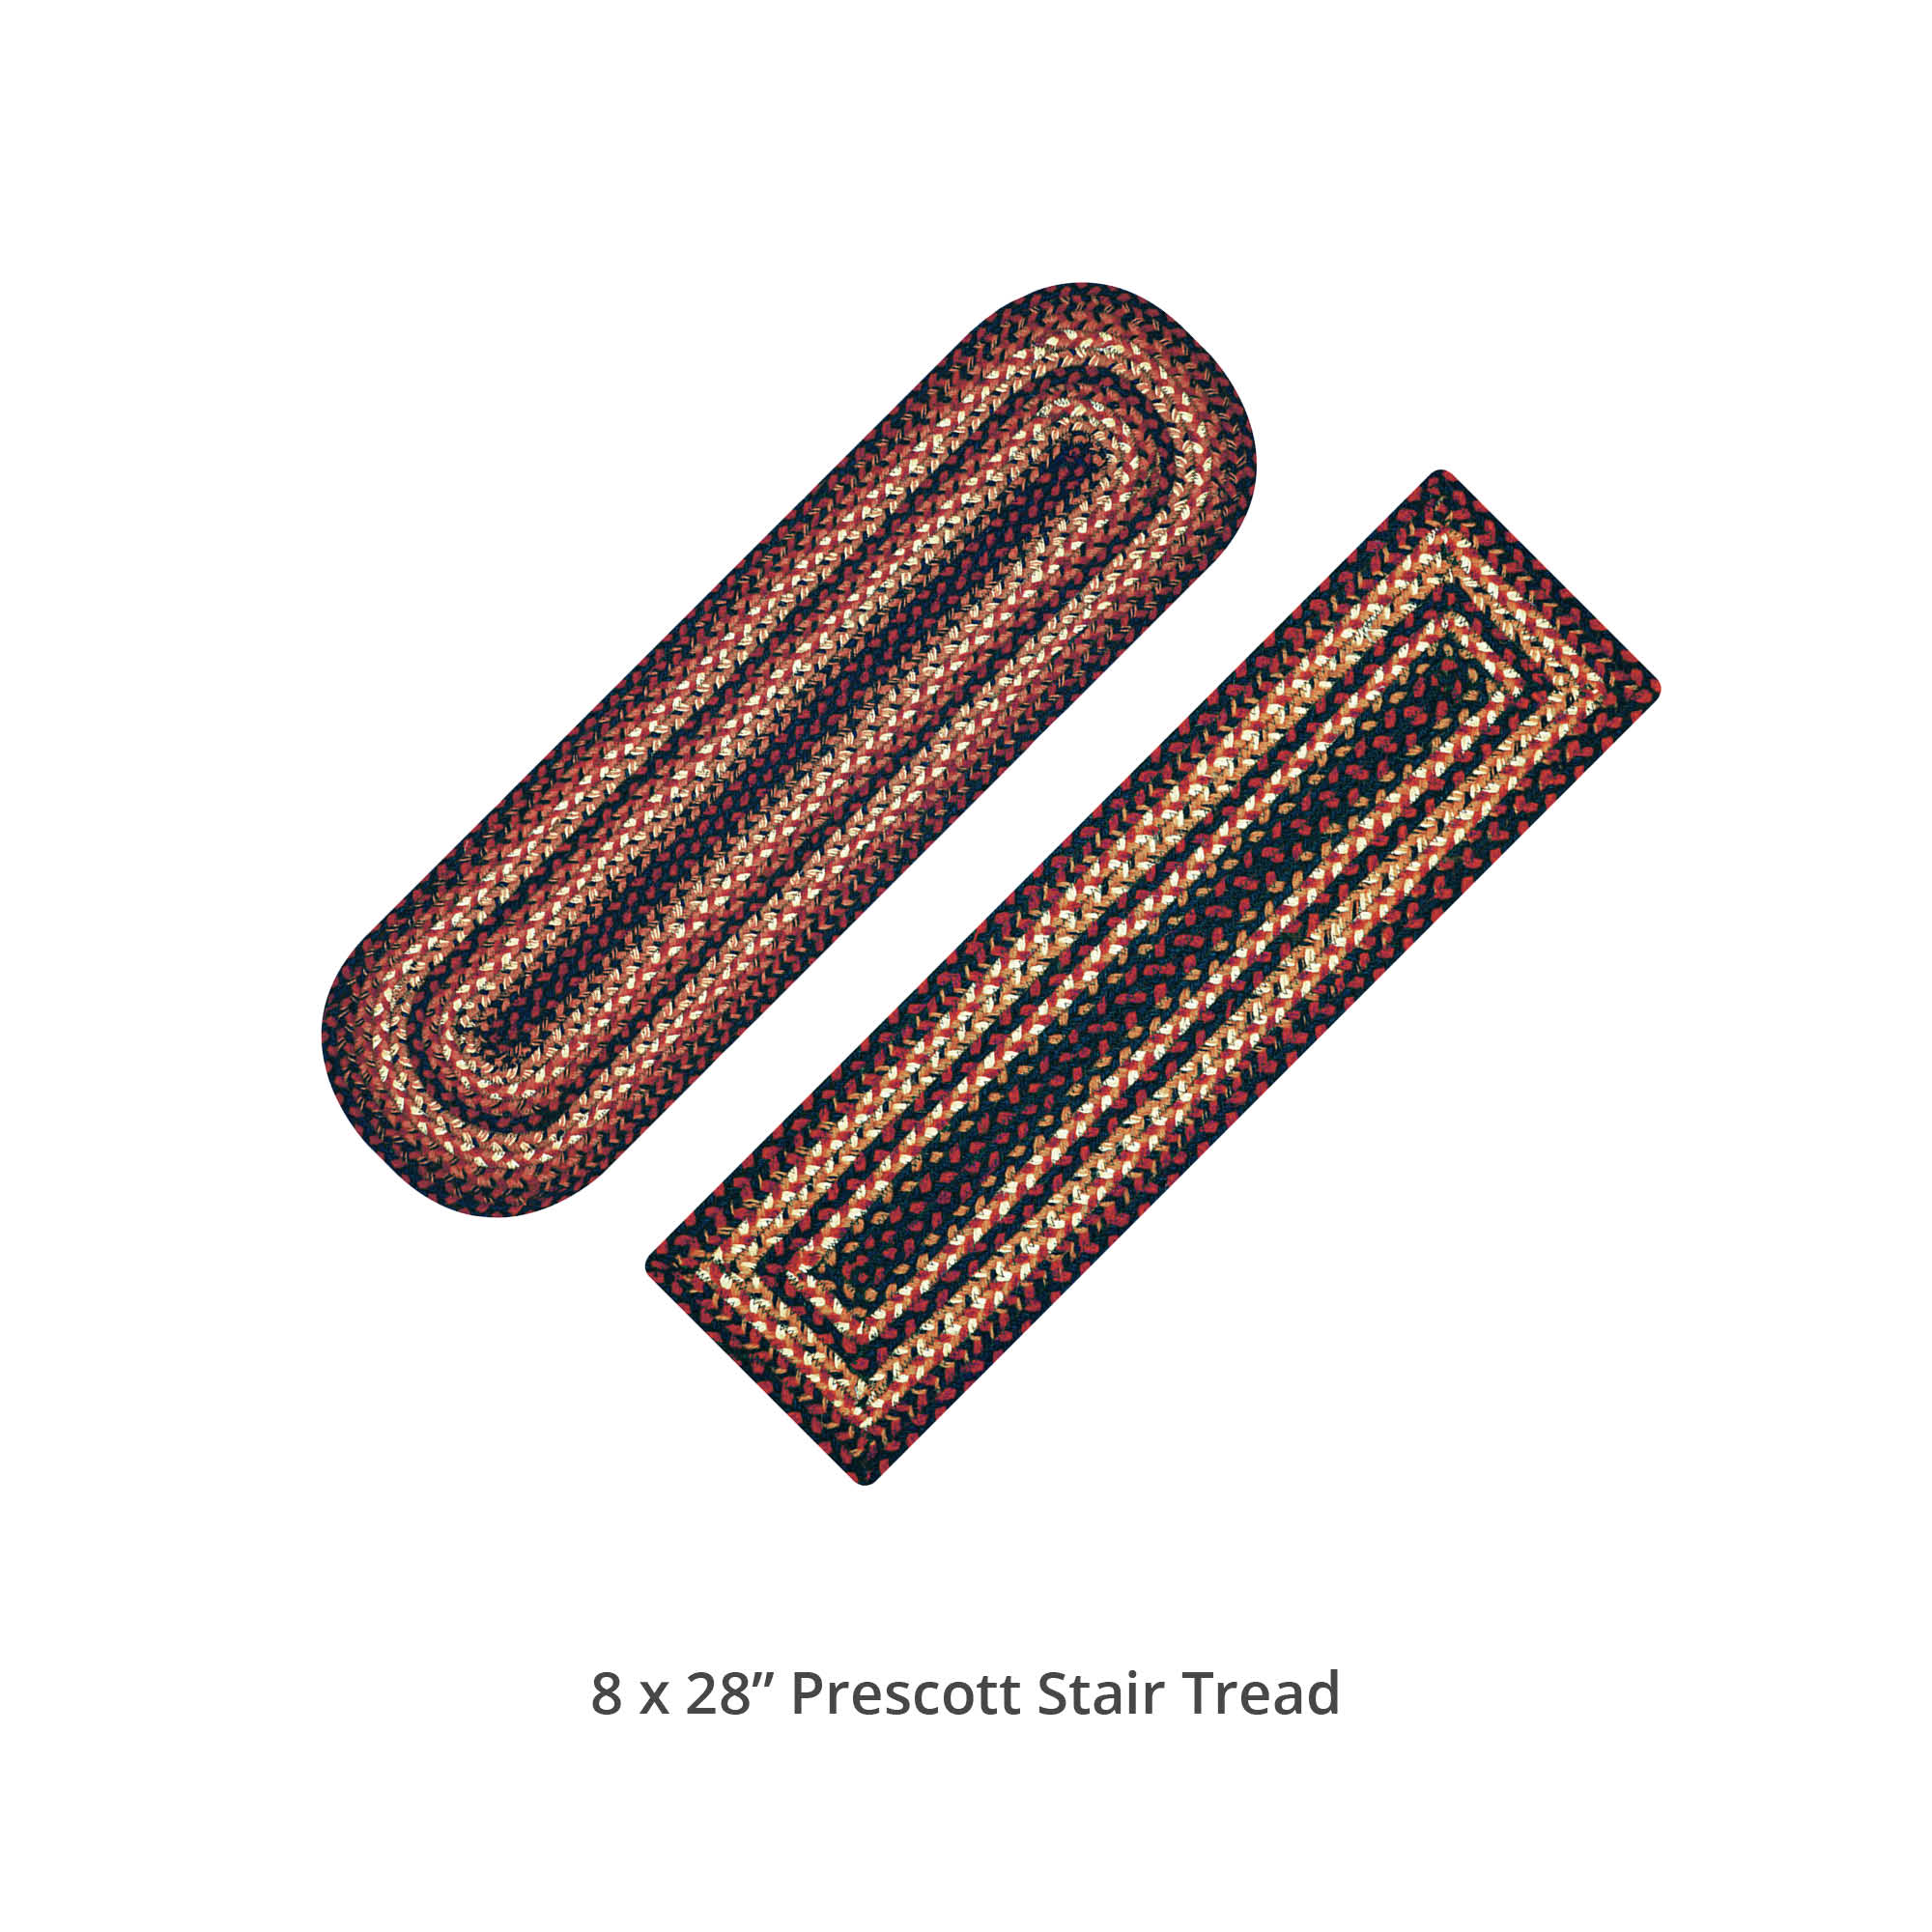 Prescott Jute Stair Tread or Table Runner